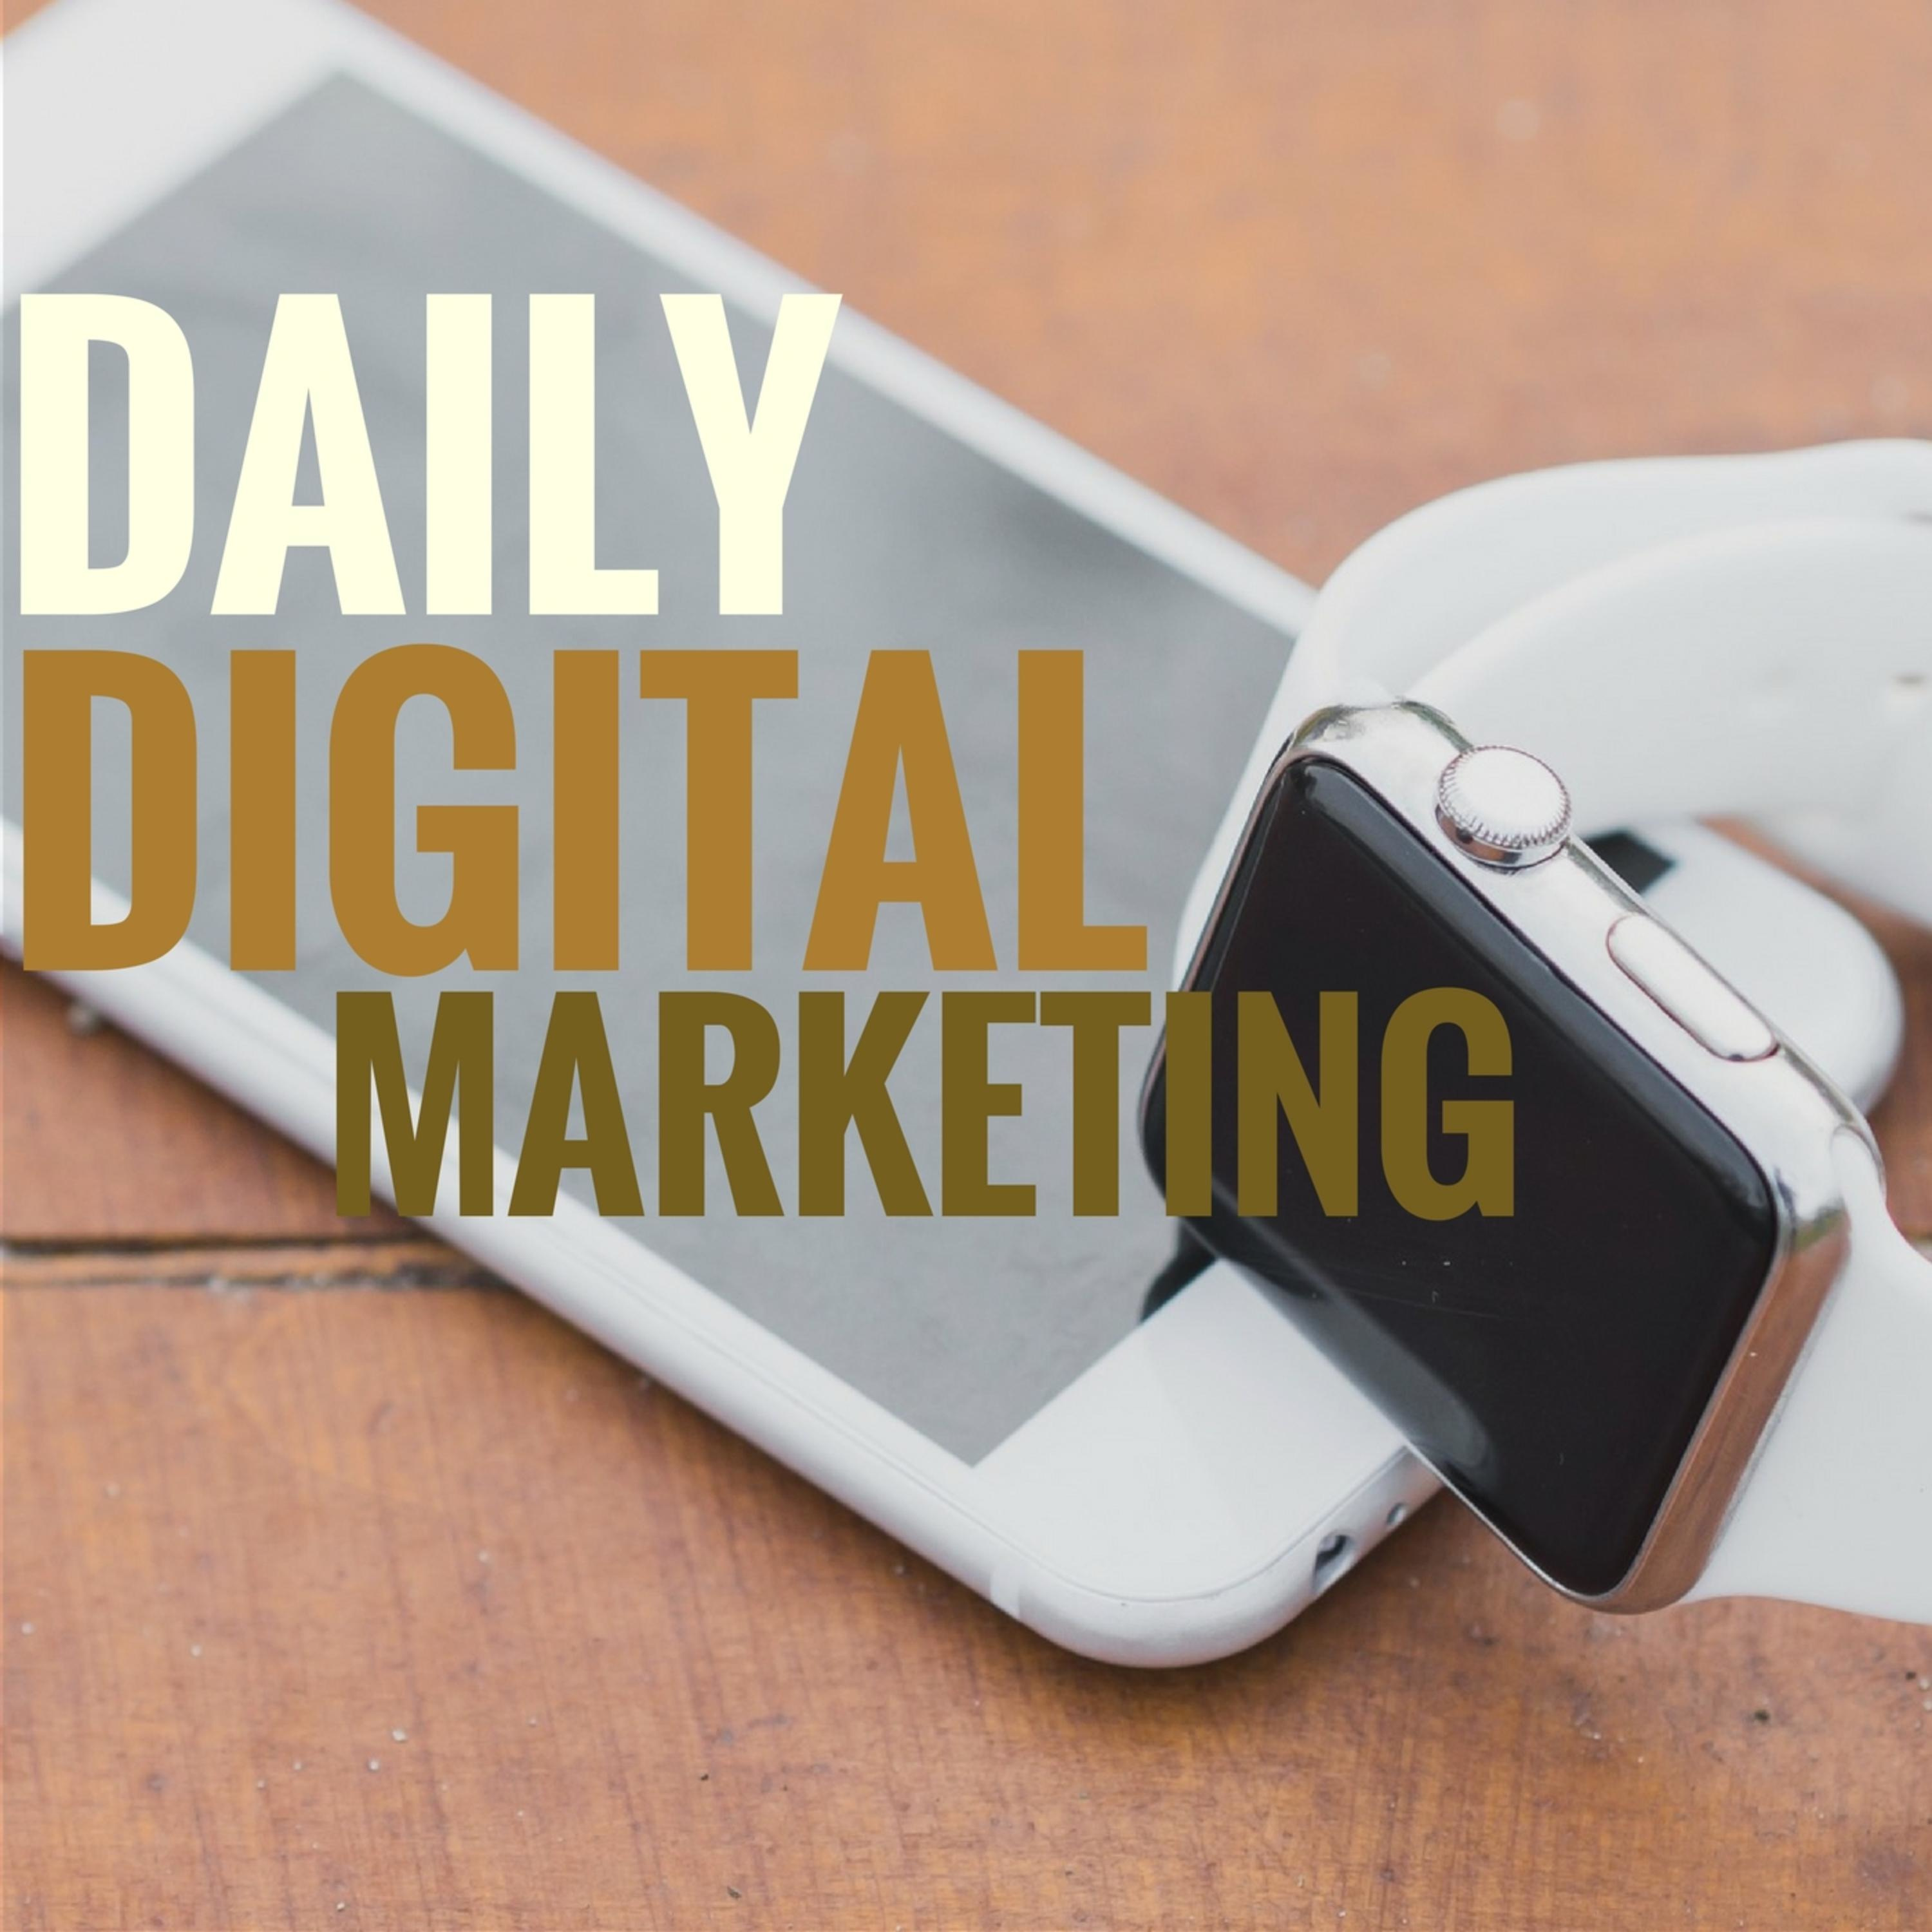 Daily Digital Marketing News Update - March 1, 2019